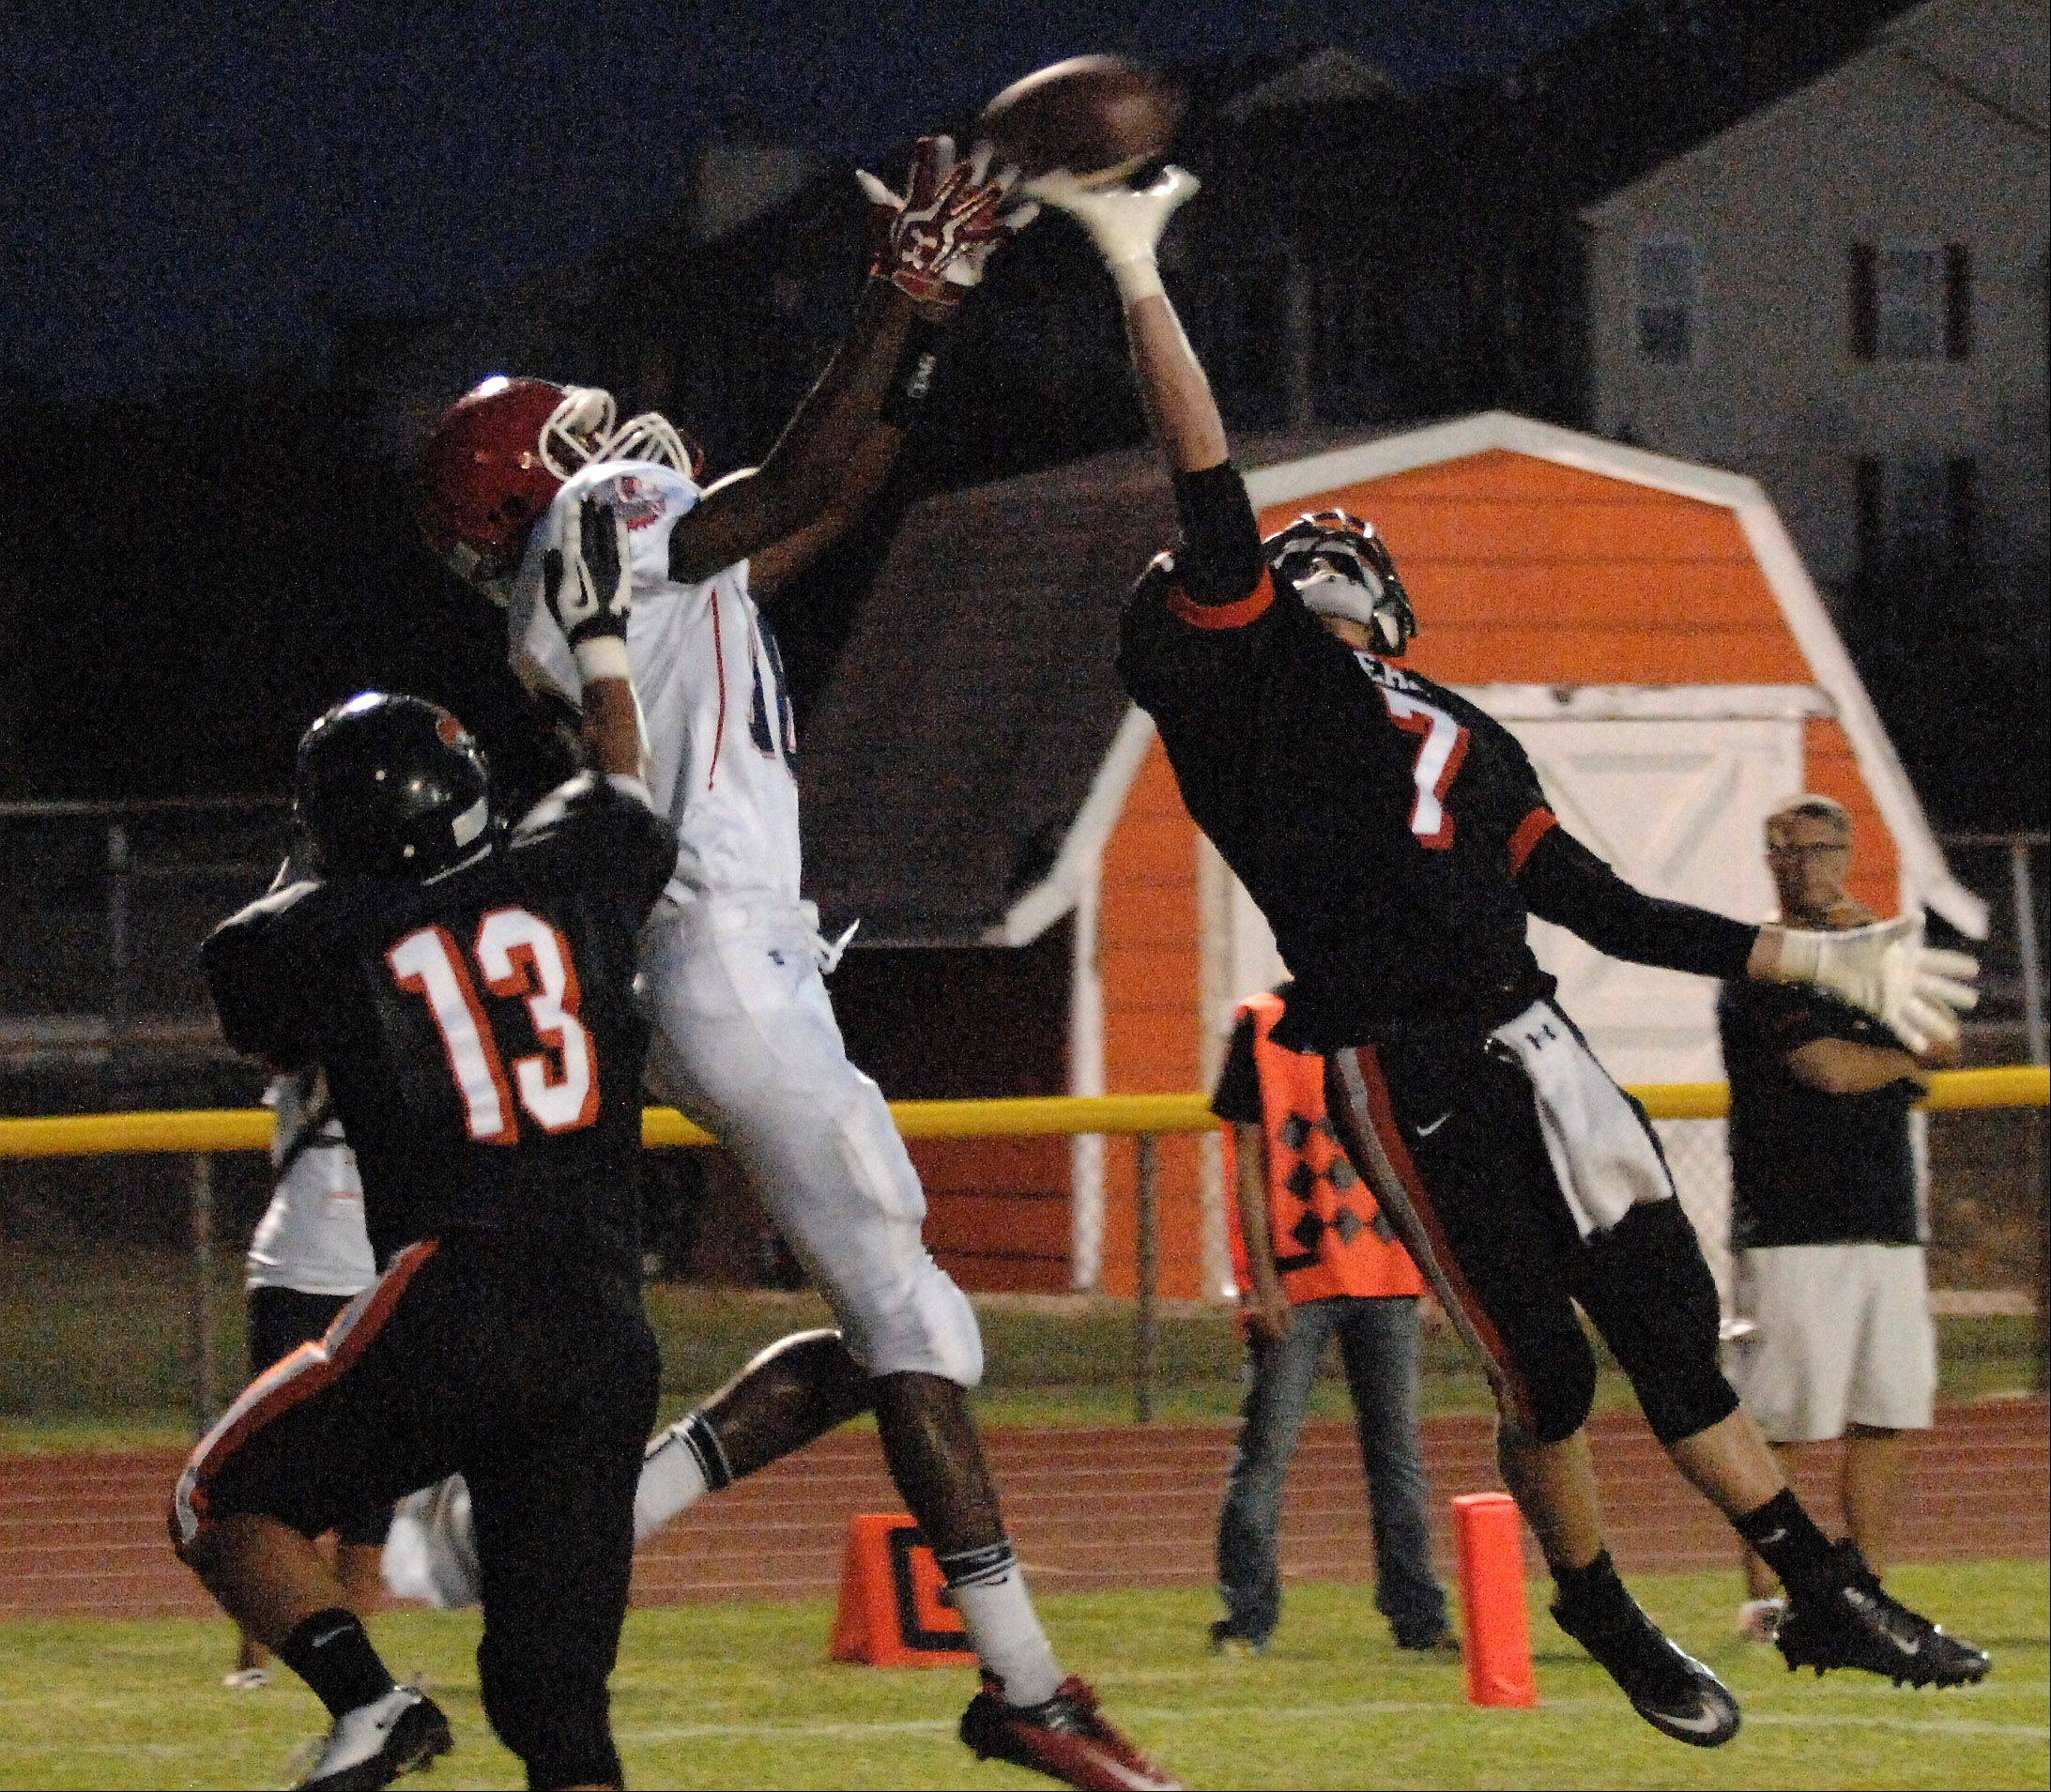 St. Charles East's LJ Rutkowski breaks up a pass in the end zone intended for West Aurora's Aaron Kennebrew.